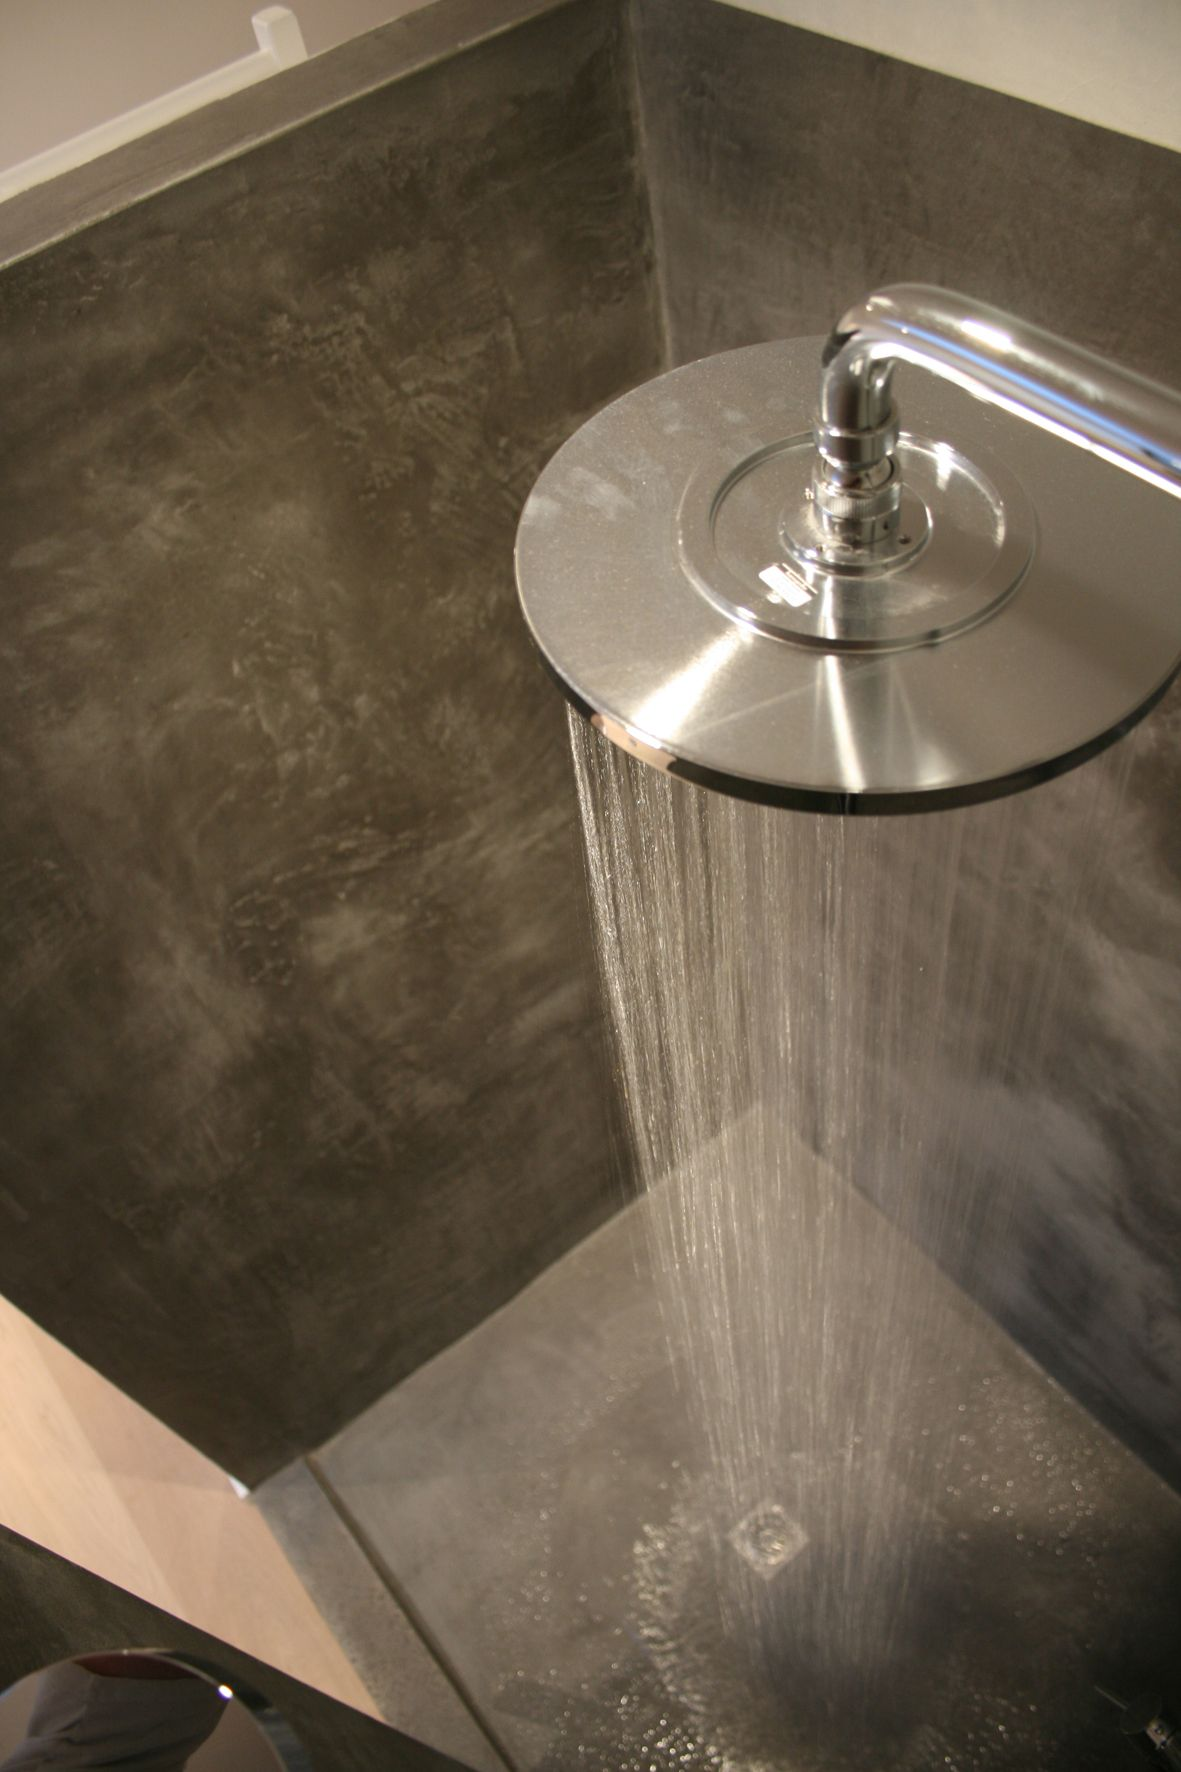 1000 images about beal mortex color on pinterest patrick obrian toilets and colors - Mortex Color